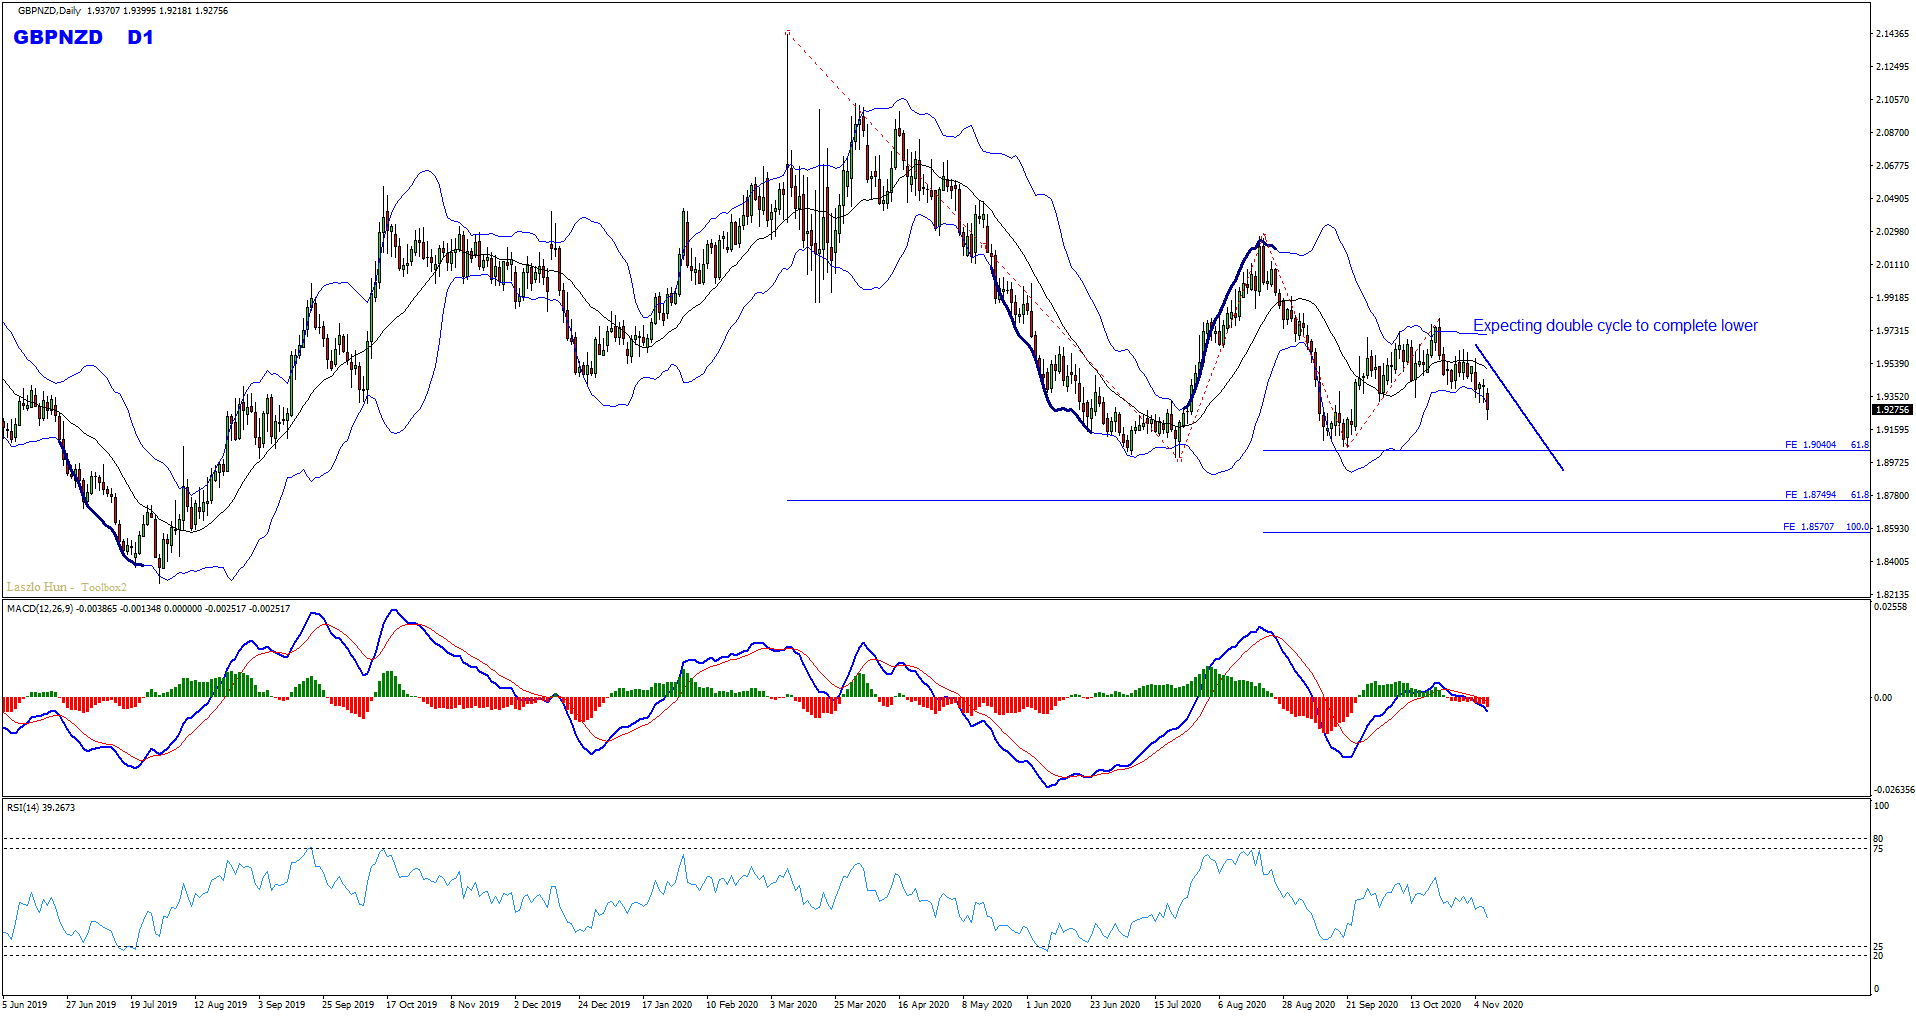 GBPNZD Sell Trade Update And Follow Up